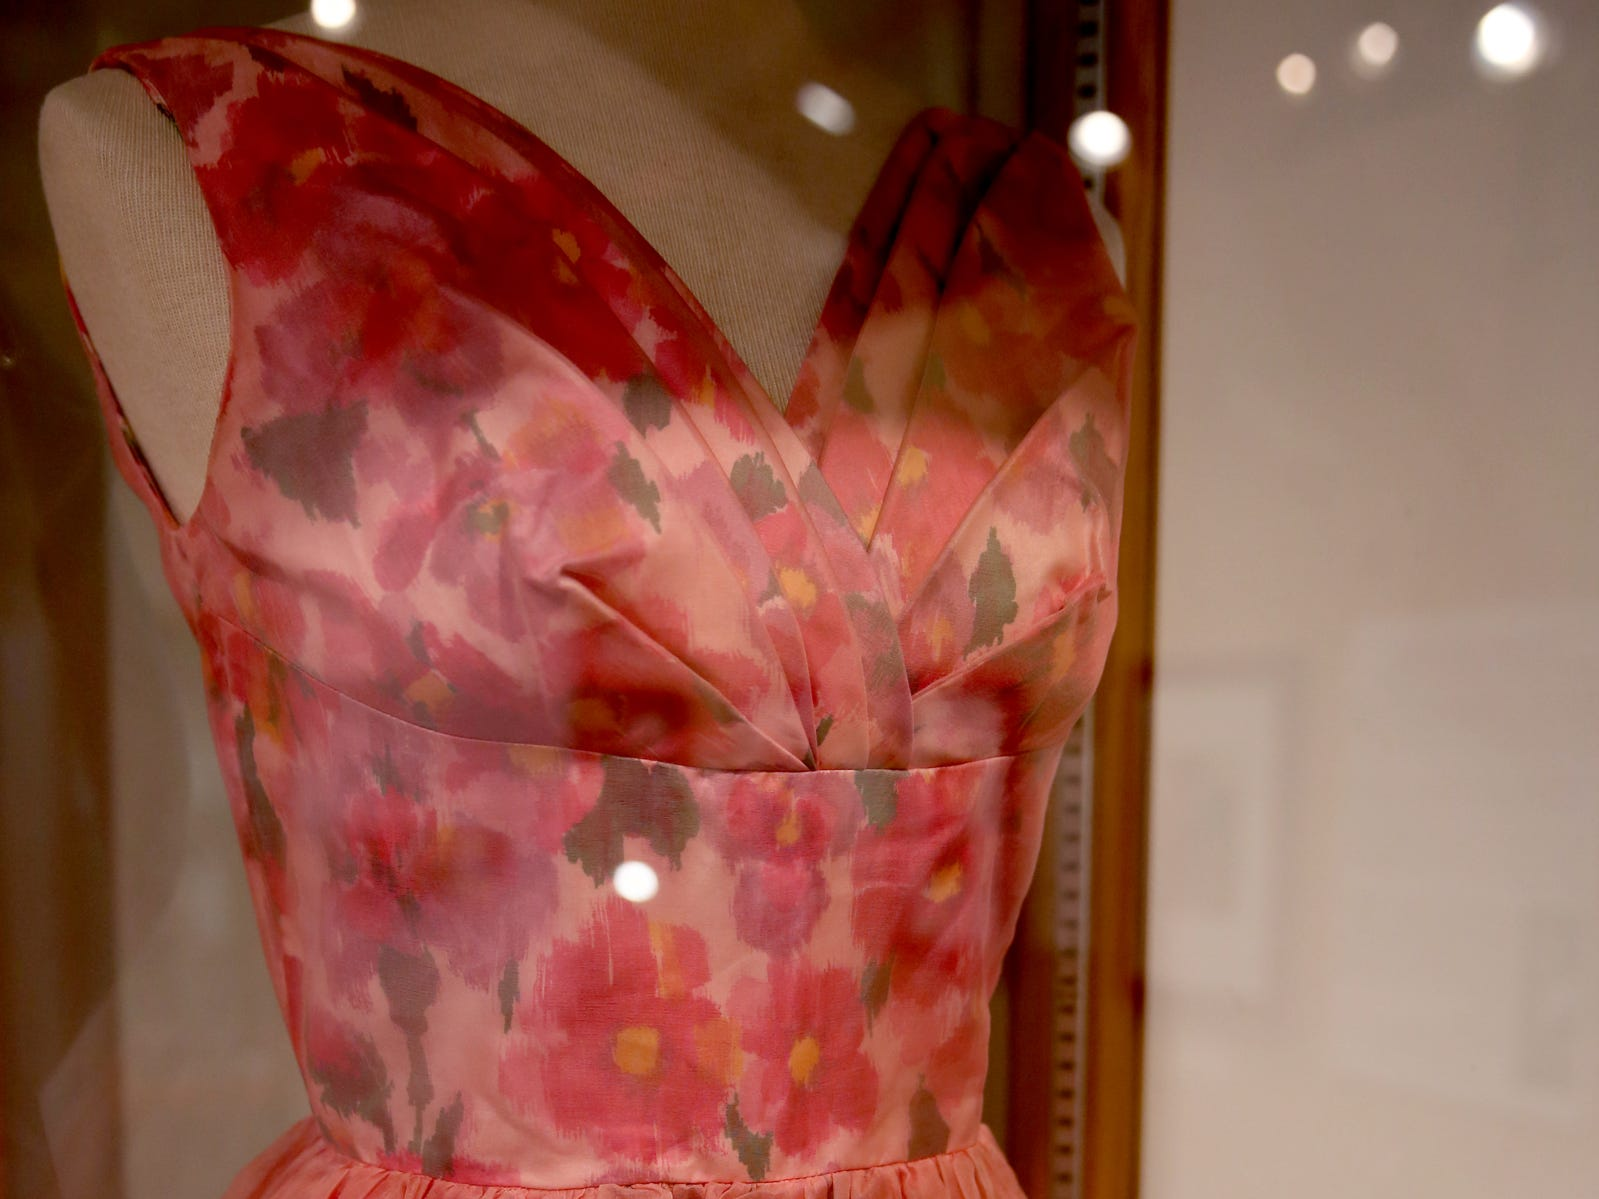 A dress worn to social dances, part of the Romance: Stories of Love and Passion in the Mid-Willamette Valley exhibit running through April 20 at the Willamette Heritage Center in Salem on Thursday, Jan. 31, 2019.